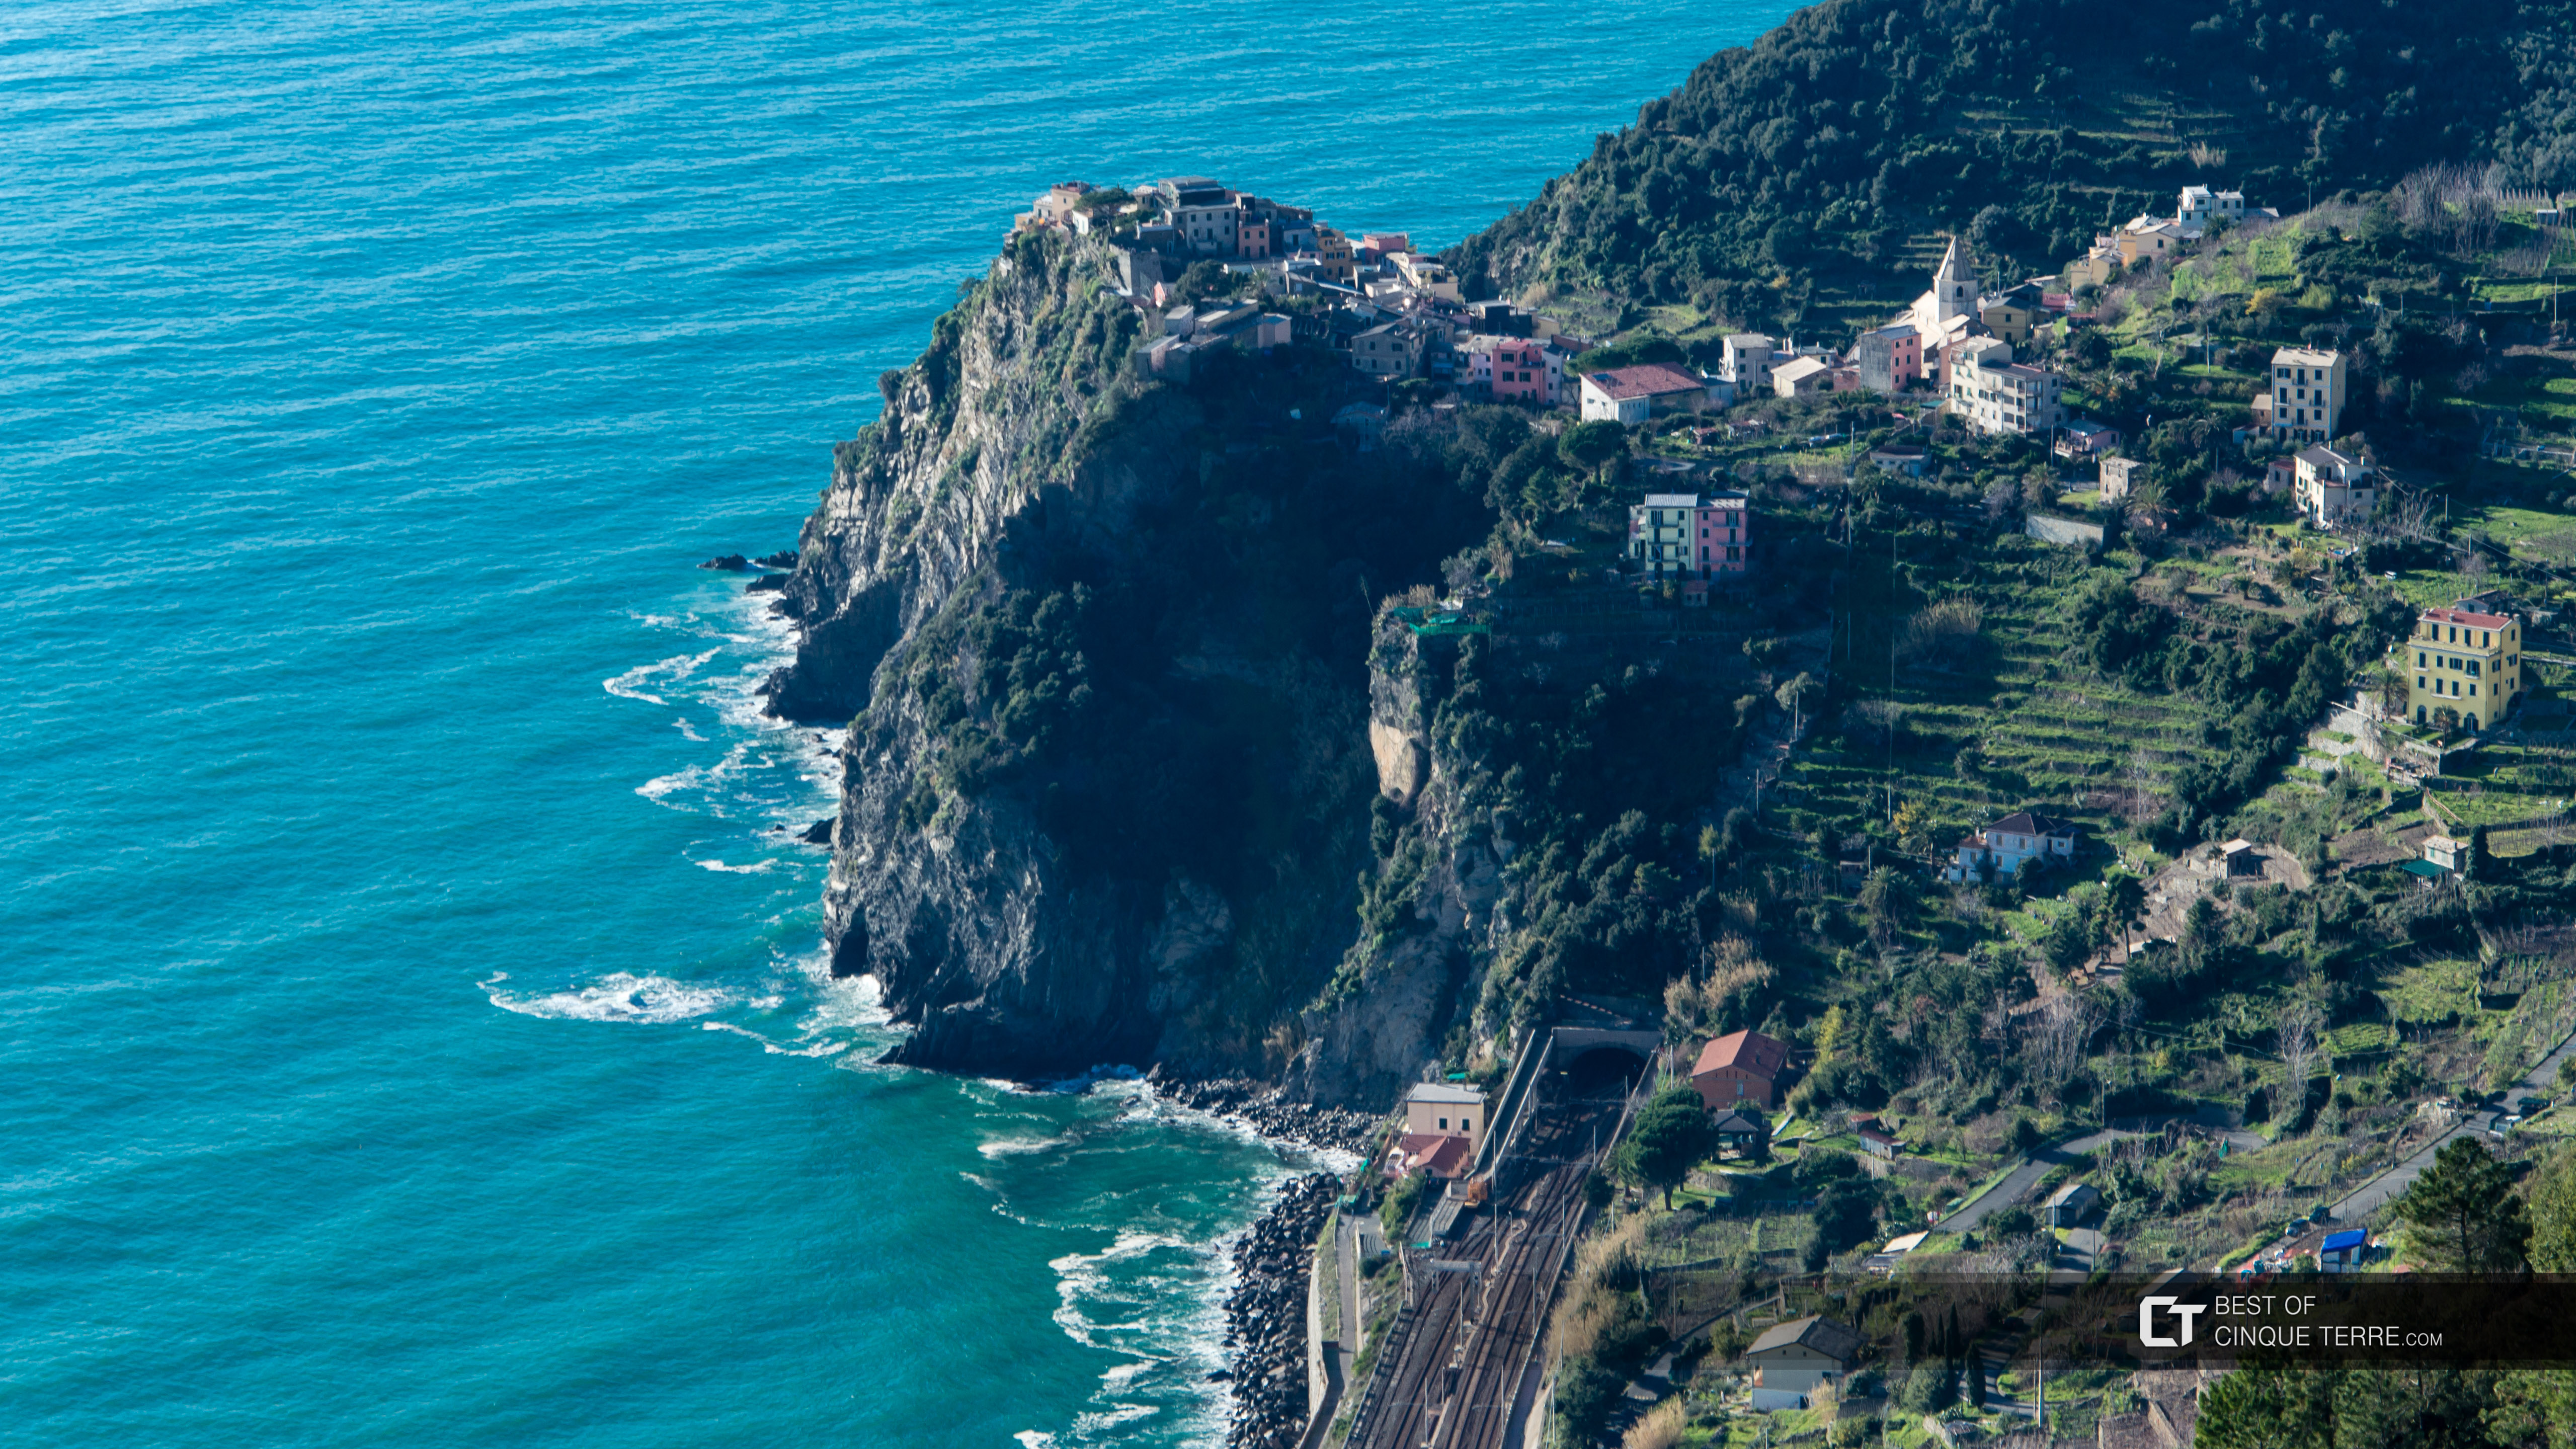 View from the trail Corniglia - Volastra - Manarola, Cinque Terre, Italy